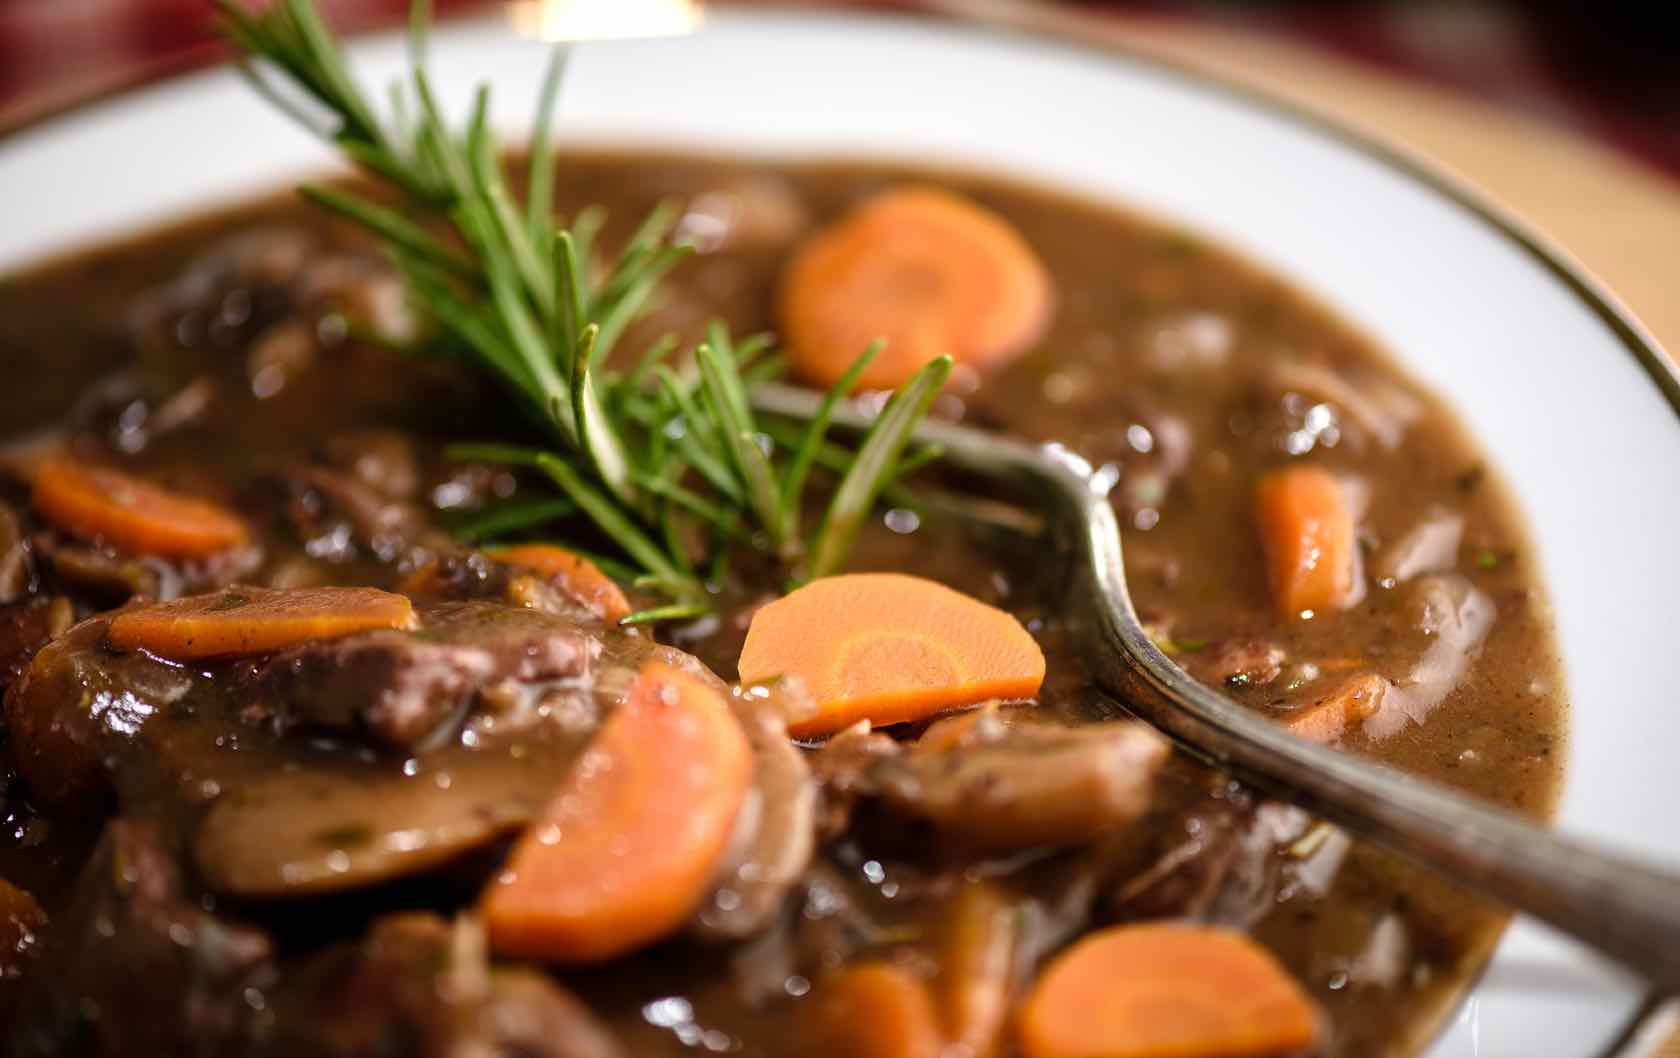 Classic Savory French Dishes Bœuf Bourguignon